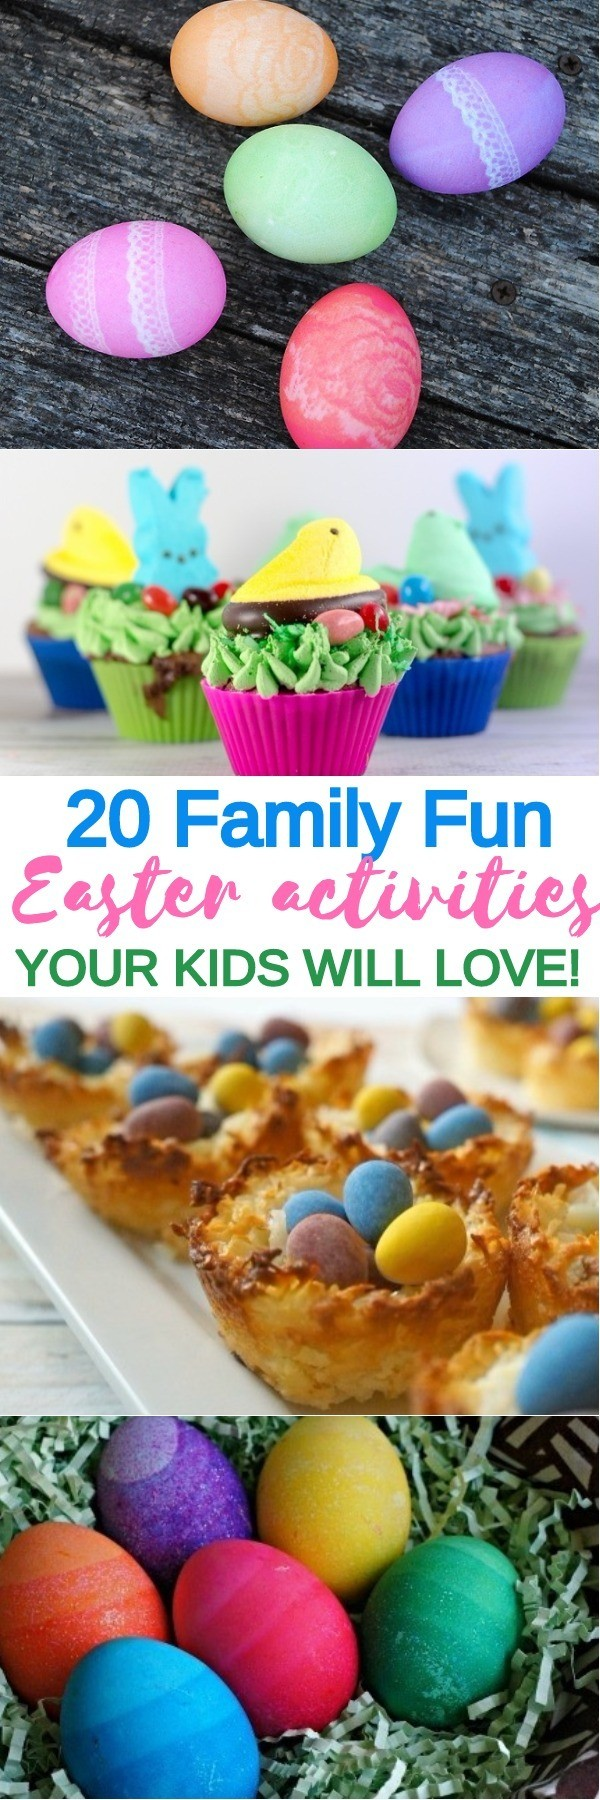 20 Easter Activities for Kids - Easter Treats, Egg Decorating Ideas, and Easter Printables   easter crafts for kids   what to do for easter   easter games and activities   honeyandlime.co